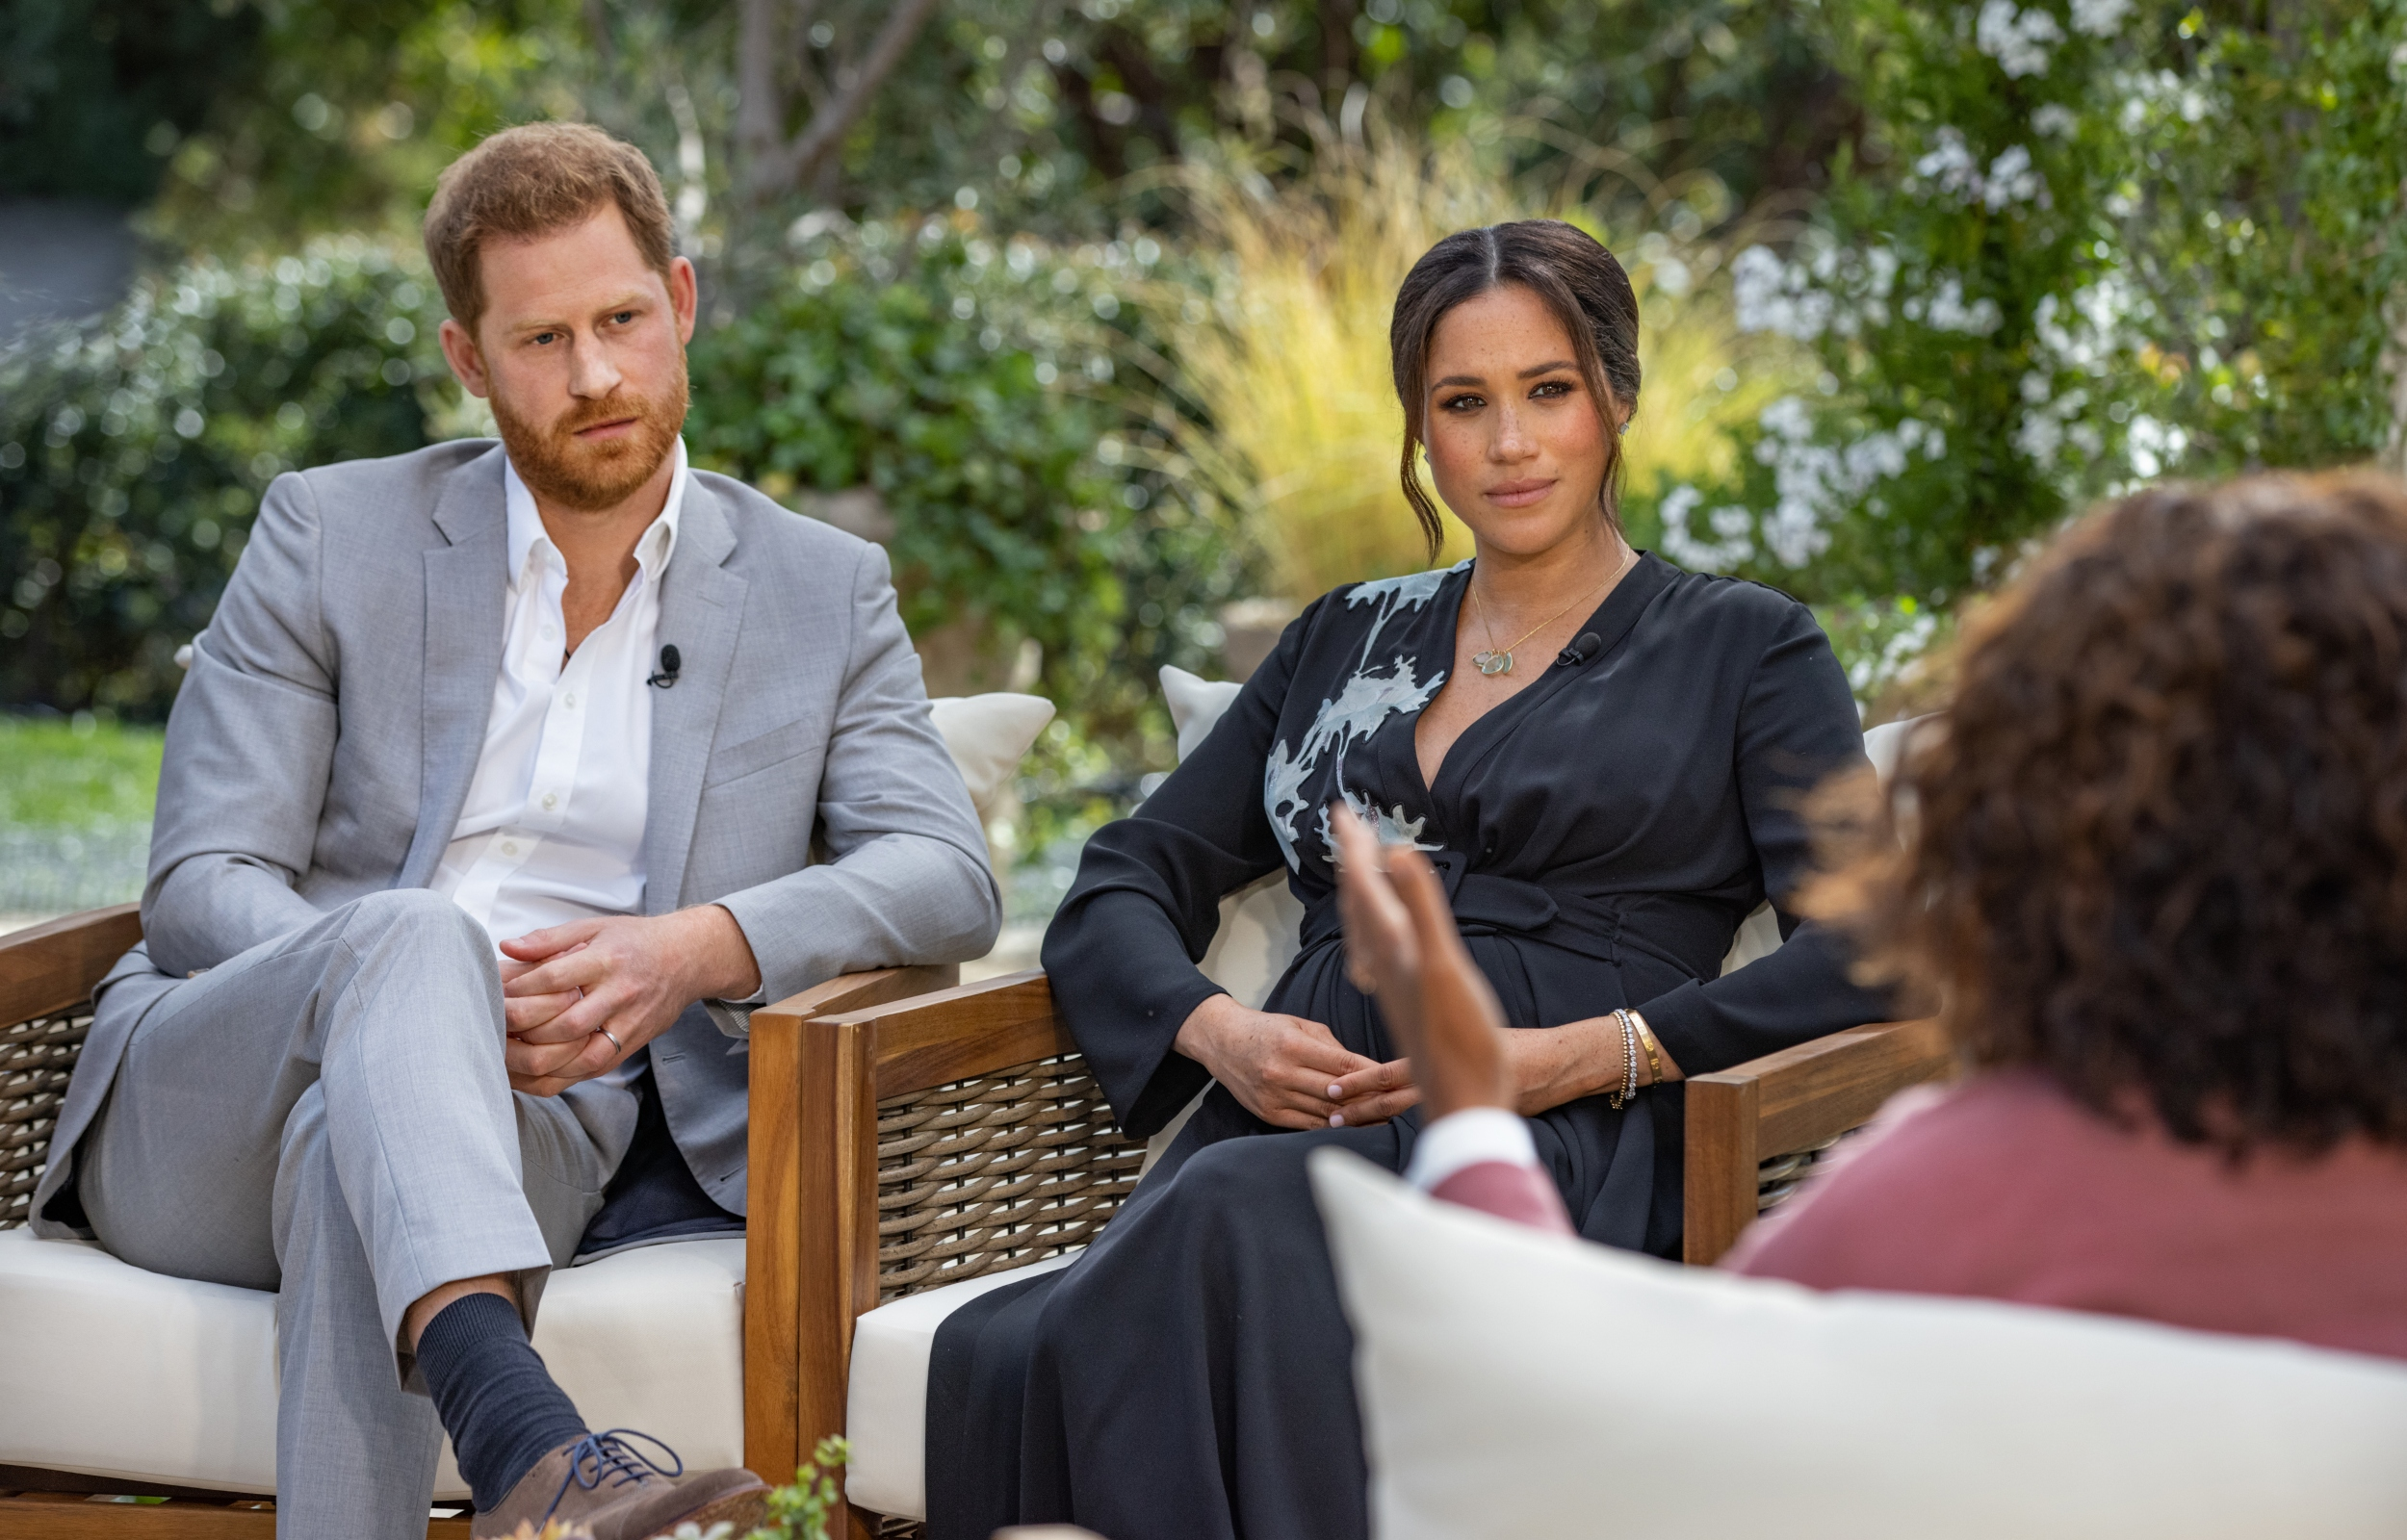 Oprah Winfrey interviews Prince Harry and Meghan Markle outside. Everyone is dressed up.